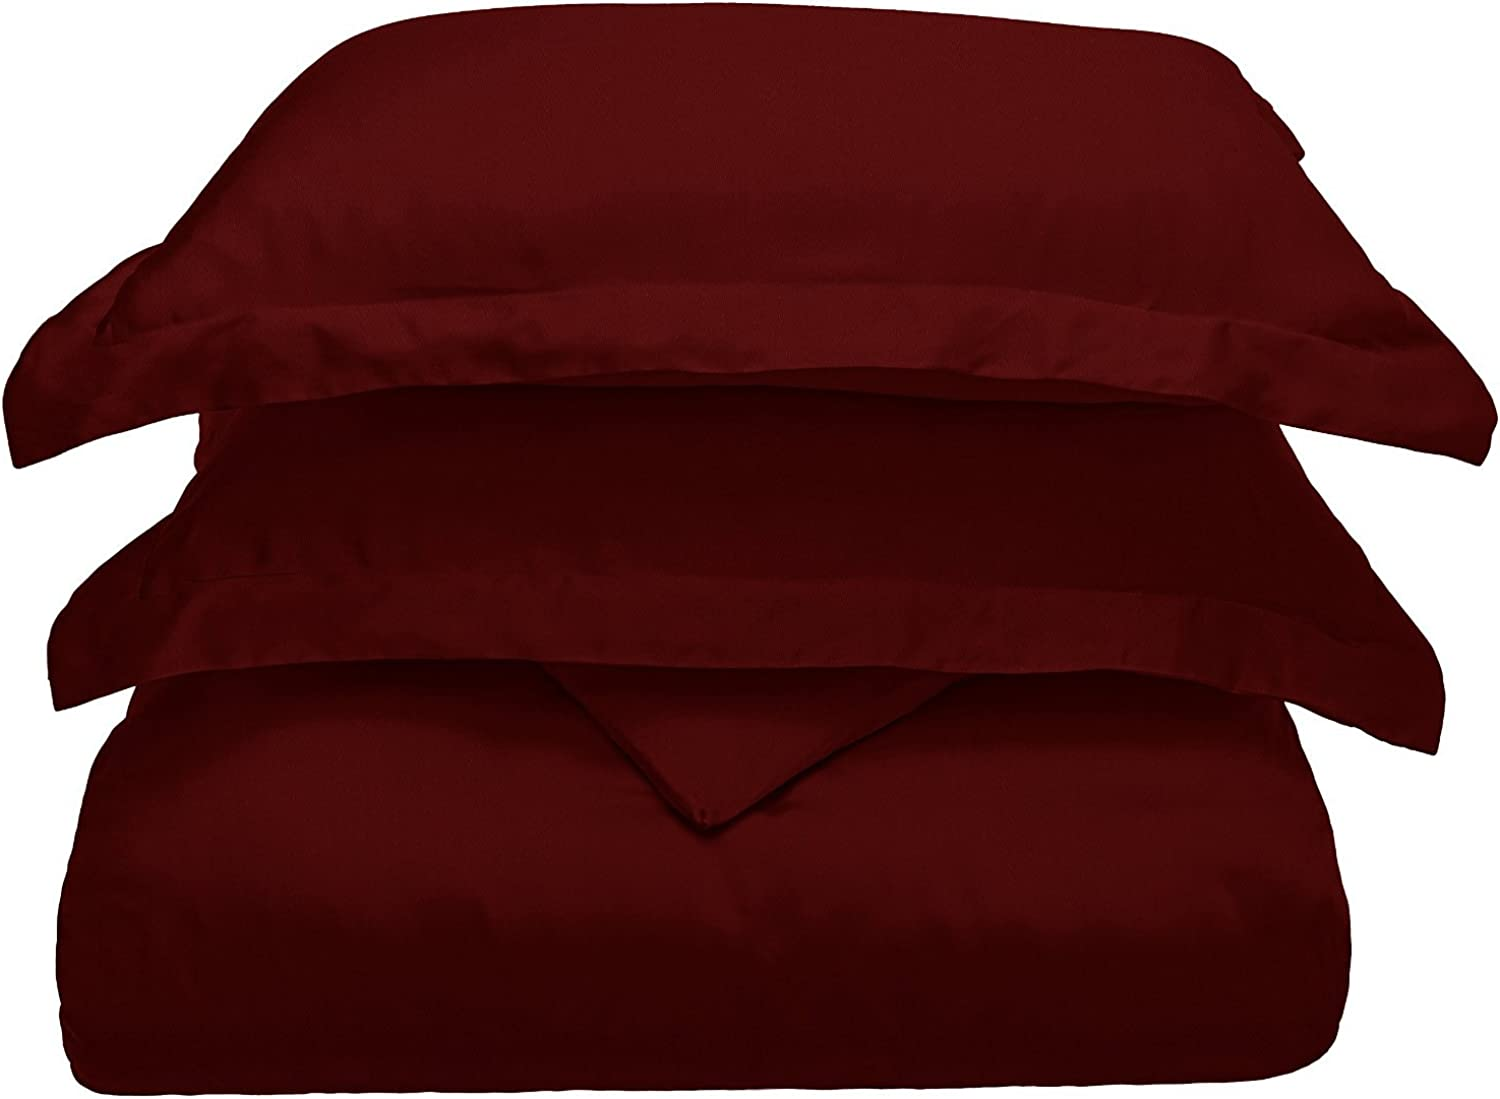 Superior 300 Thread Count Full Queen Duvet Cover Set, 100% Modal from Beech, Solid, Burgundy